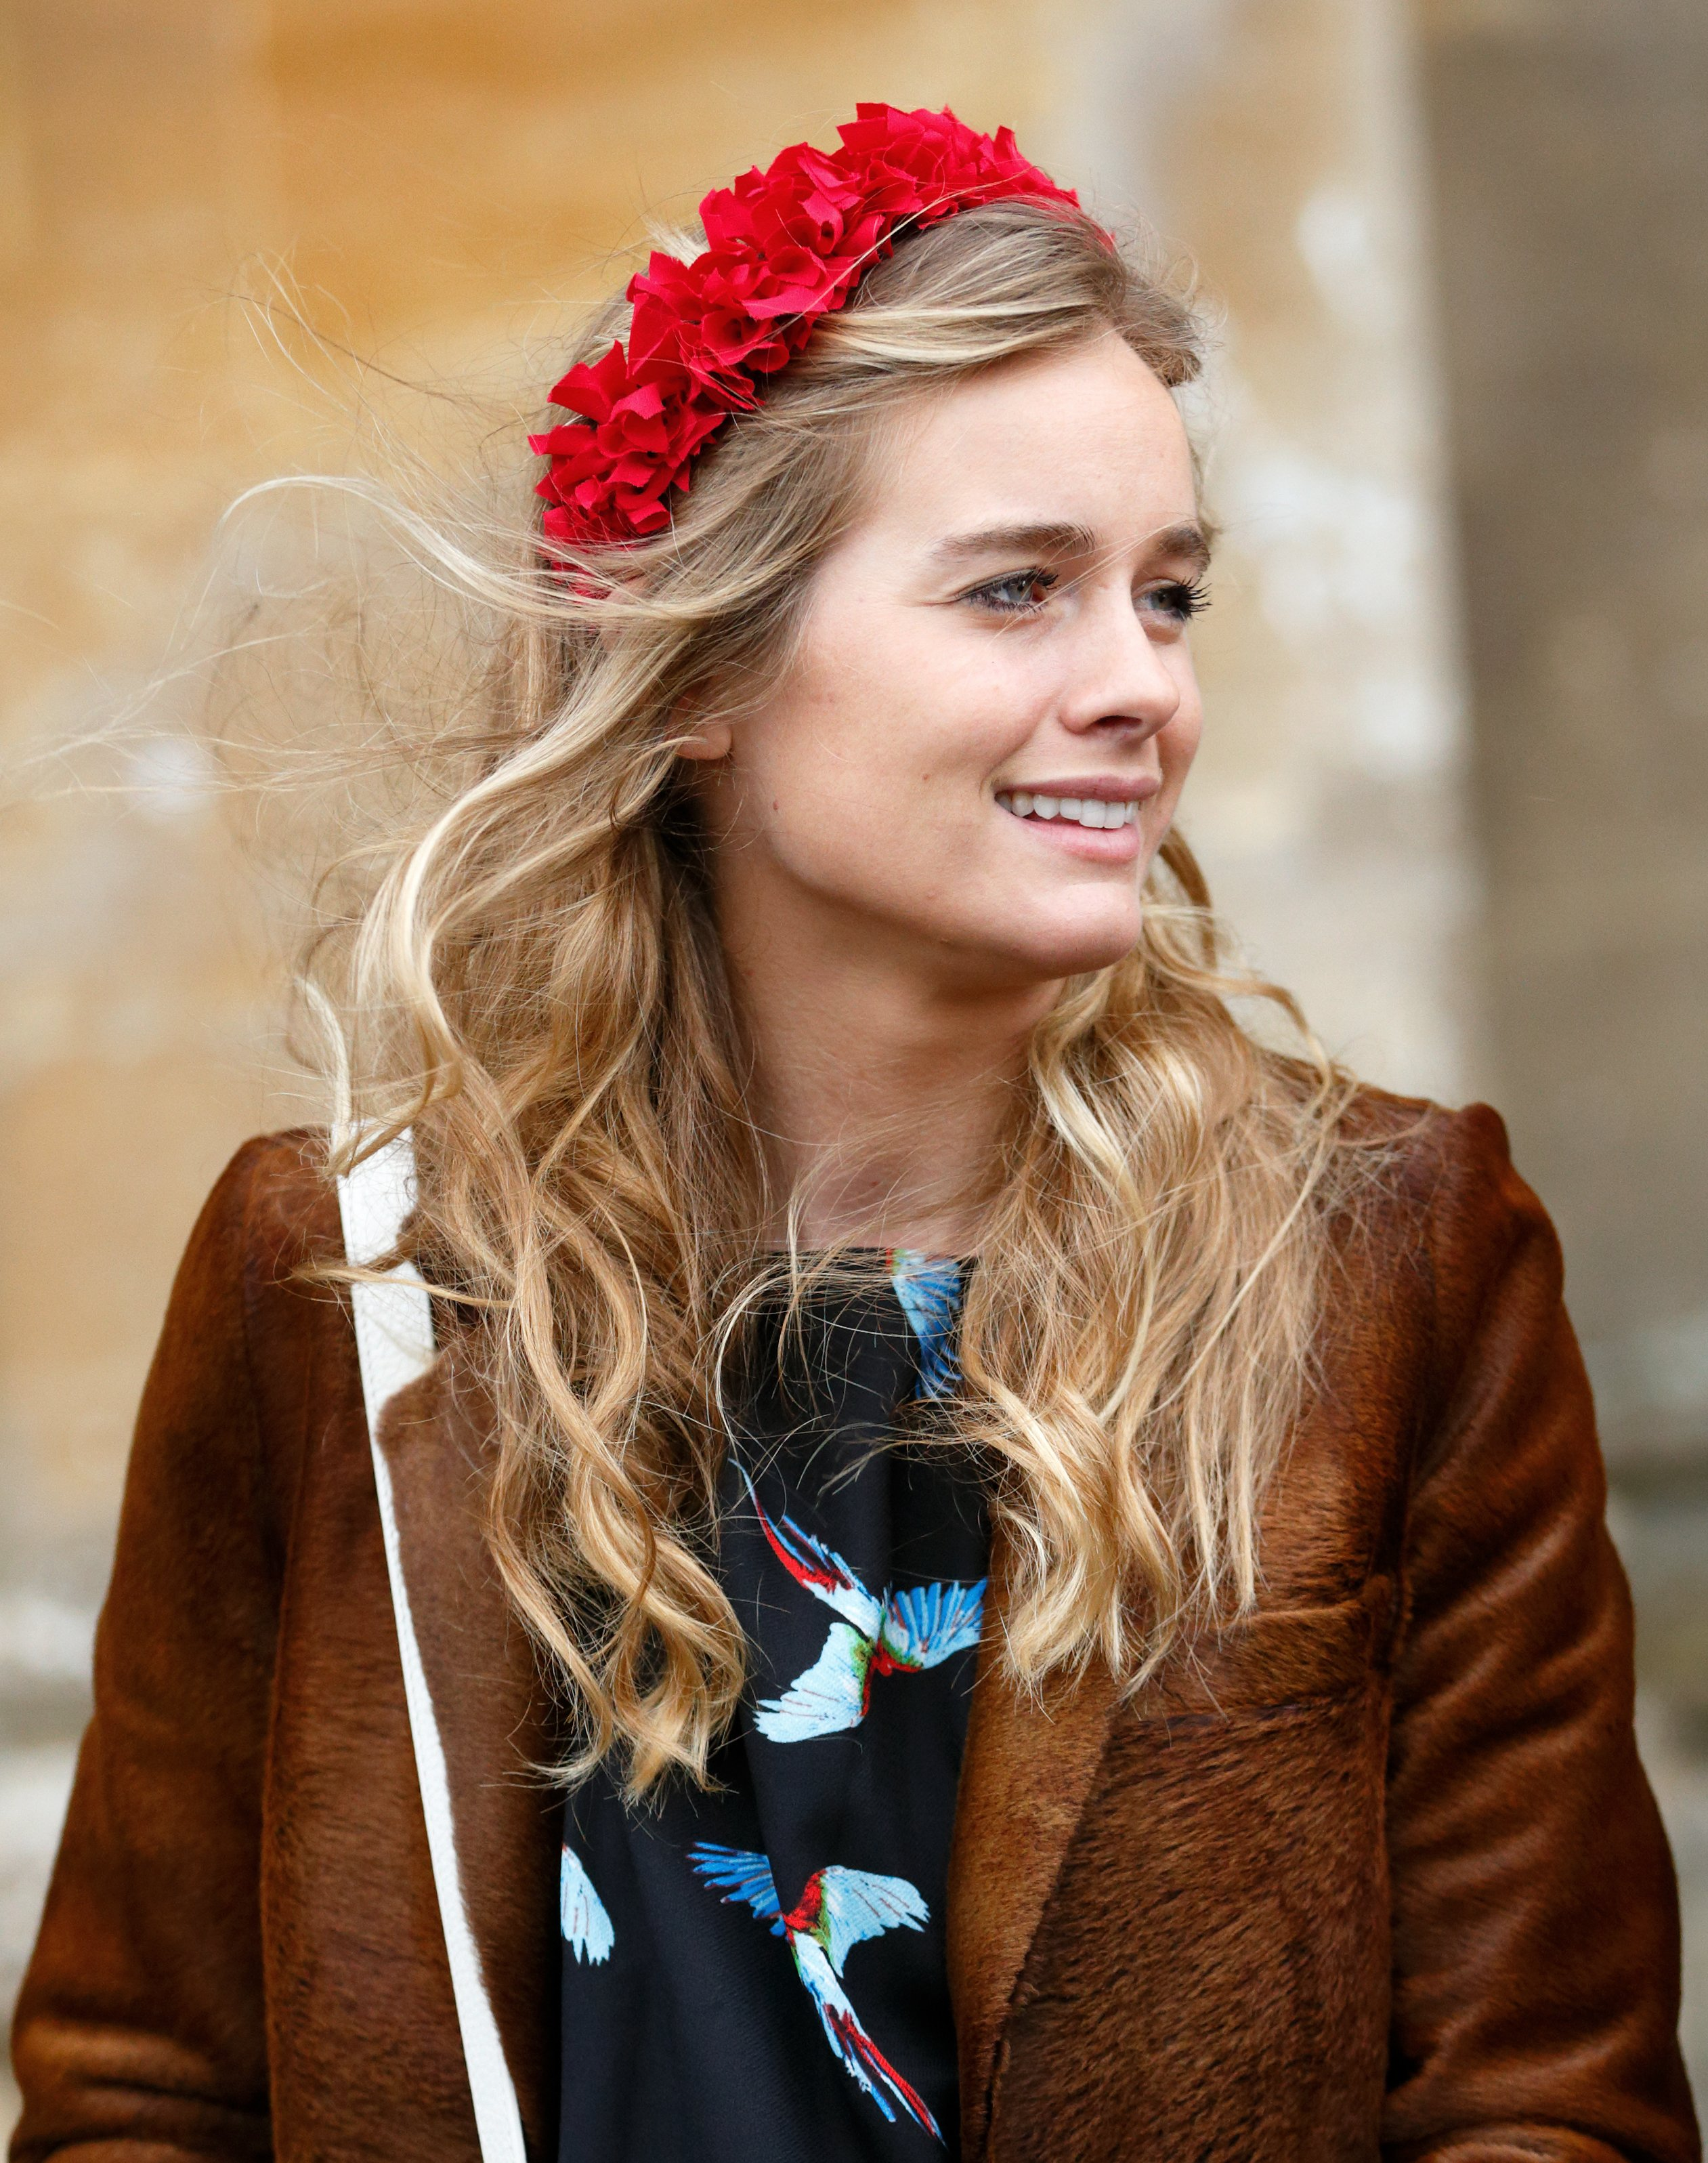 Image Credits: Getty Images / Max Mumby / Indigo   Cressida Bonas attends a memorial service for Miles Frost at Arundel Cathedral on February 5, 2016 in Arundel, England. Miles Frost, son of the late Sir David Frost, died aged 31 in July 2015.